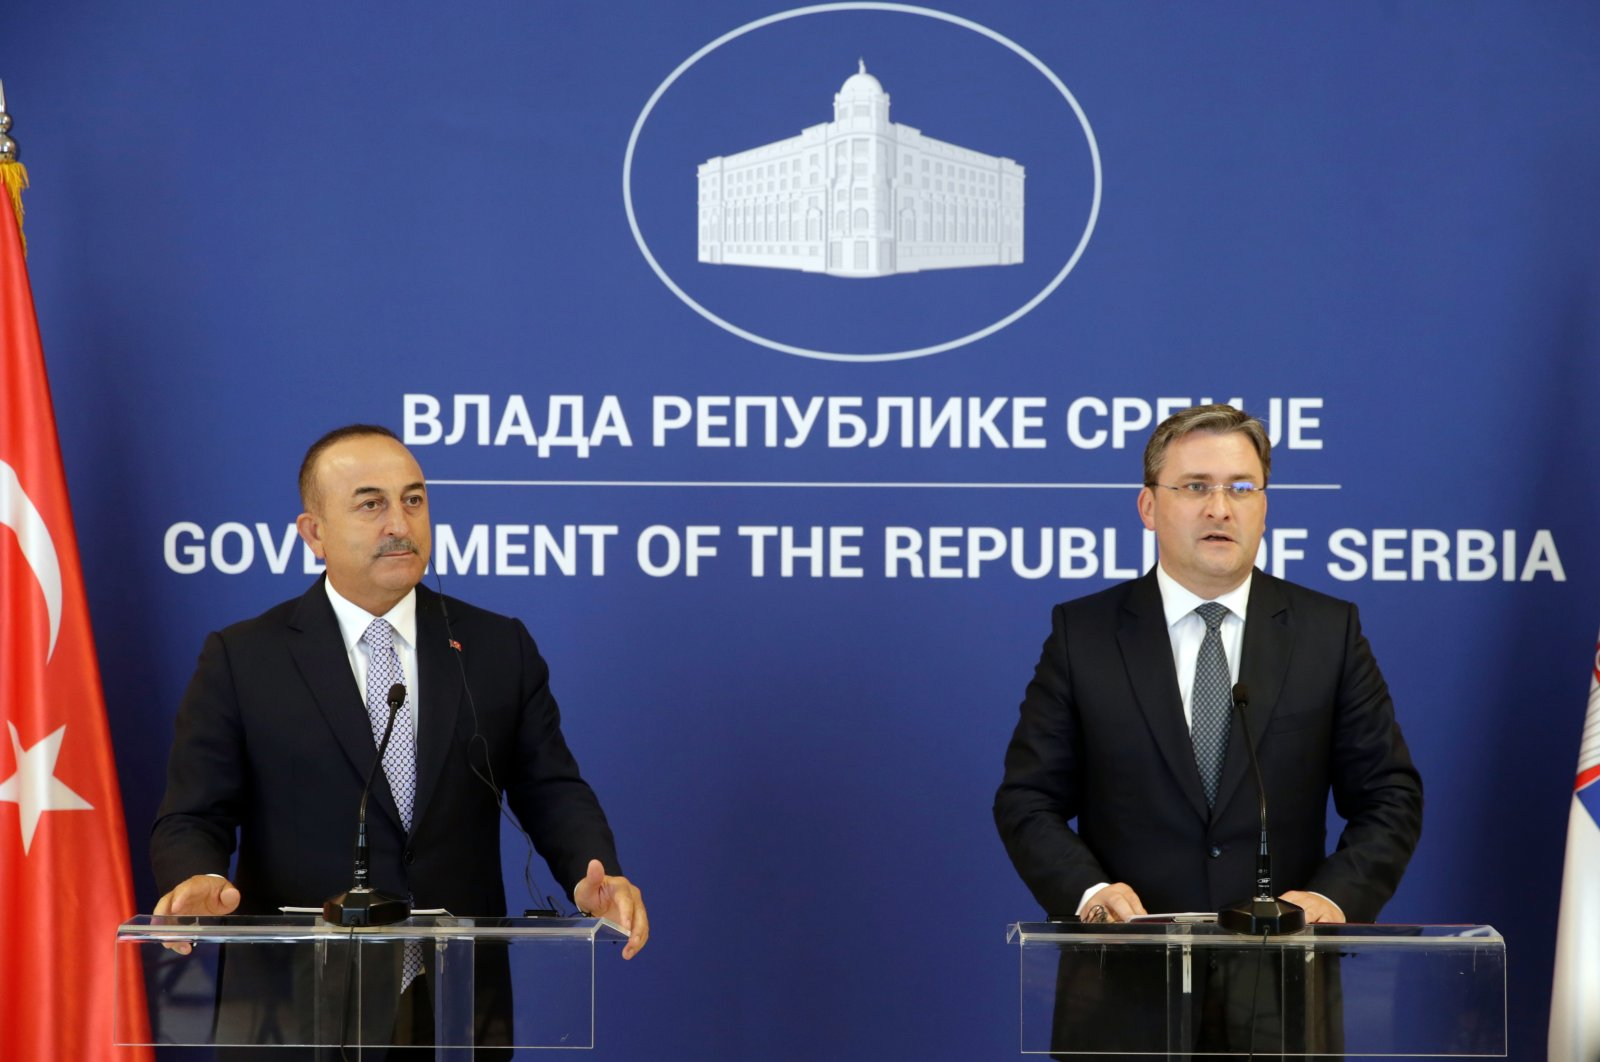 Serbian Foreign Minister Nikola Selakovic (R) speaks during a press conference with Turkish Foreign Minister MevlütÇavuşoğlu (L) after their meeting in Belgrade, Serbia, Aug. 31, 2021. (EPA Photo)